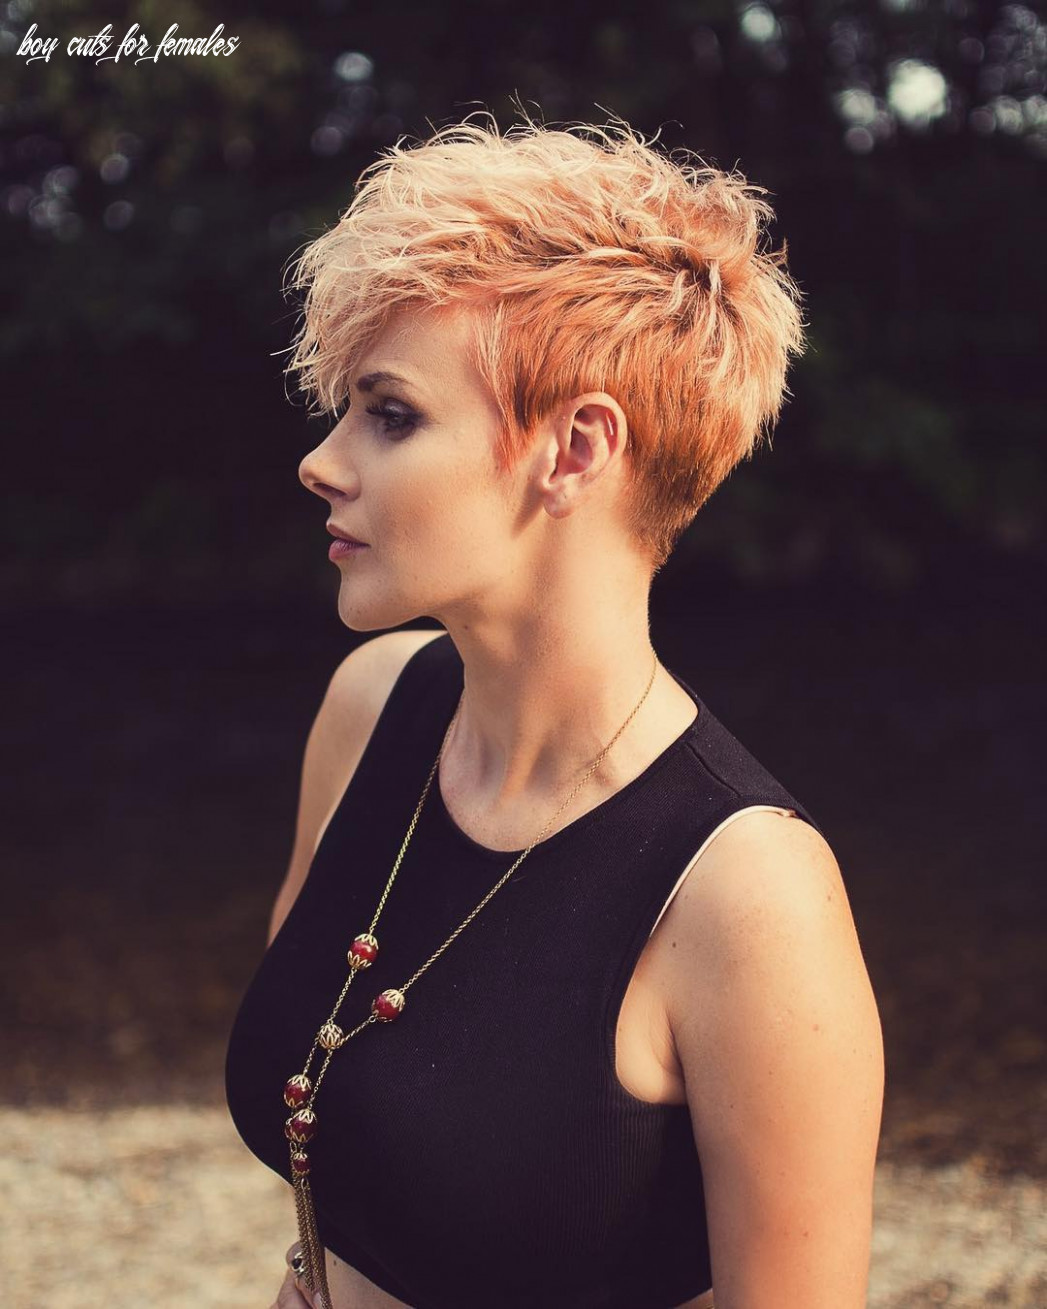 10 peppy pixie cuts boy cuts & girlie cuts to inspire 10 boy cuts for females